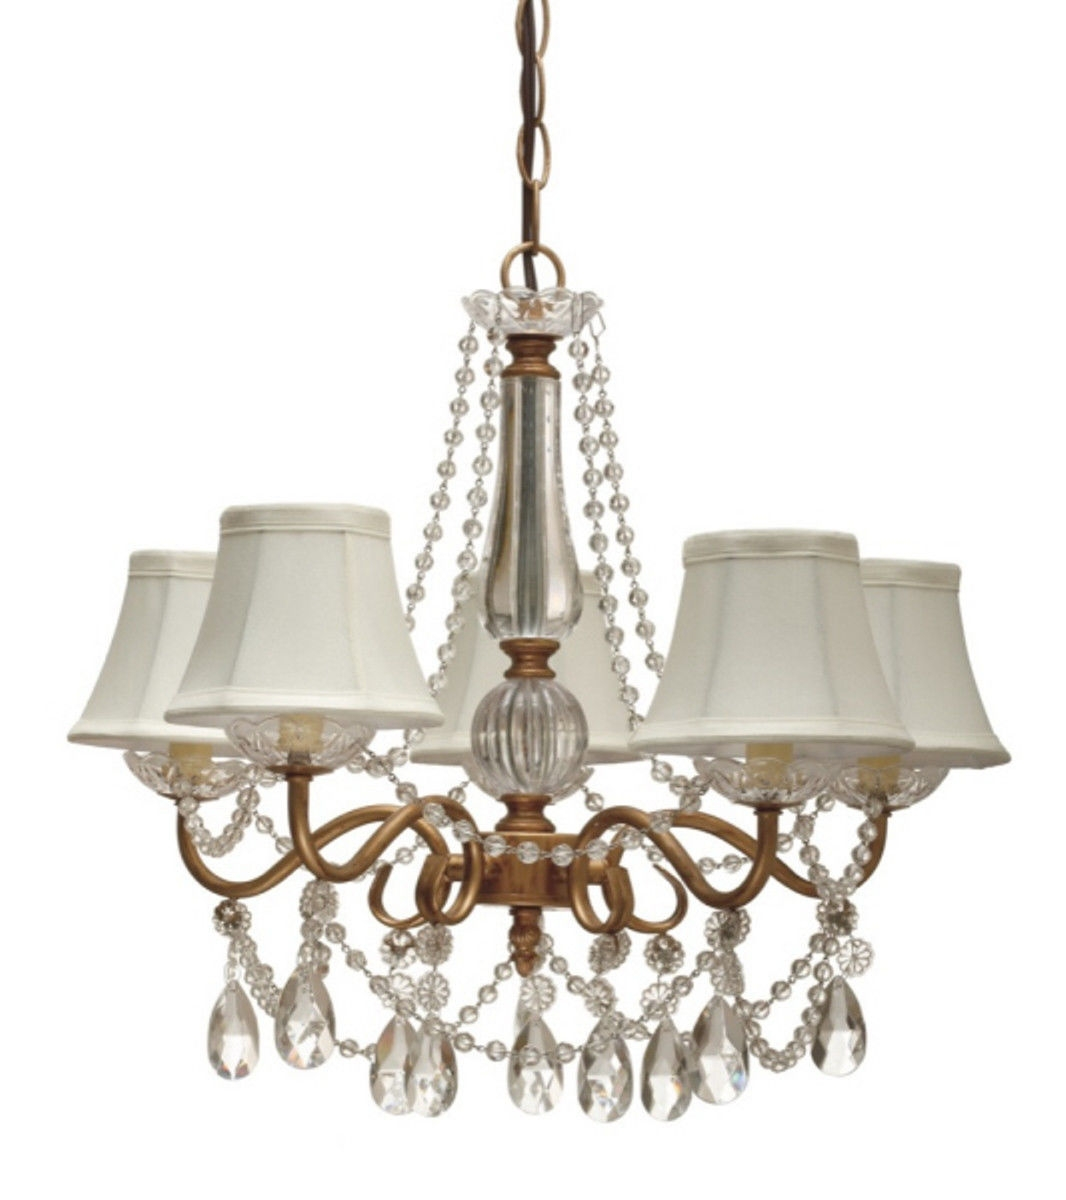 Gold Arm Crystals Chandelier 5 Silk Shades Lamp Shade Pro Regarding Crystal Gold Chandelier (#10 of 12)